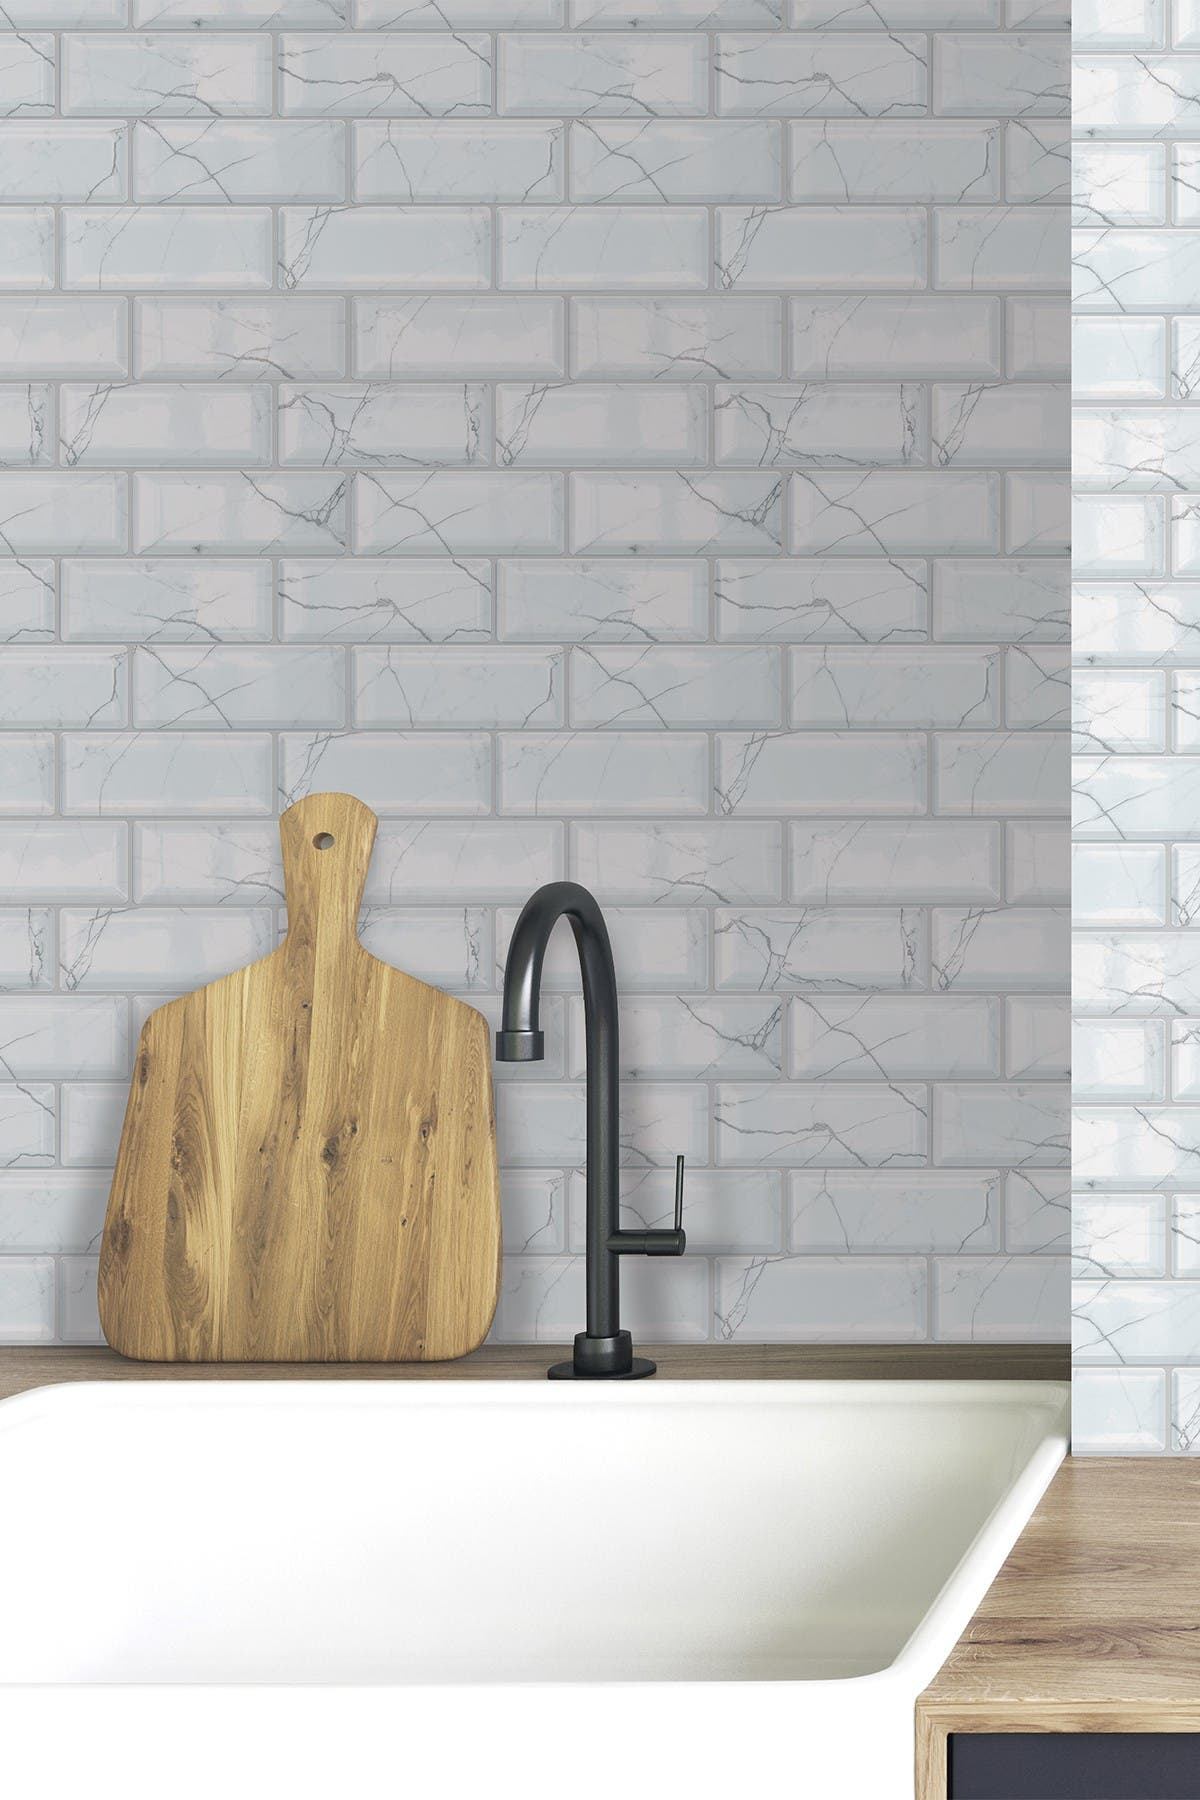 Image of WalPlus White Marble Electric 3D Metro Sticker Tiles Premium Wall Splashbacks Mosaics